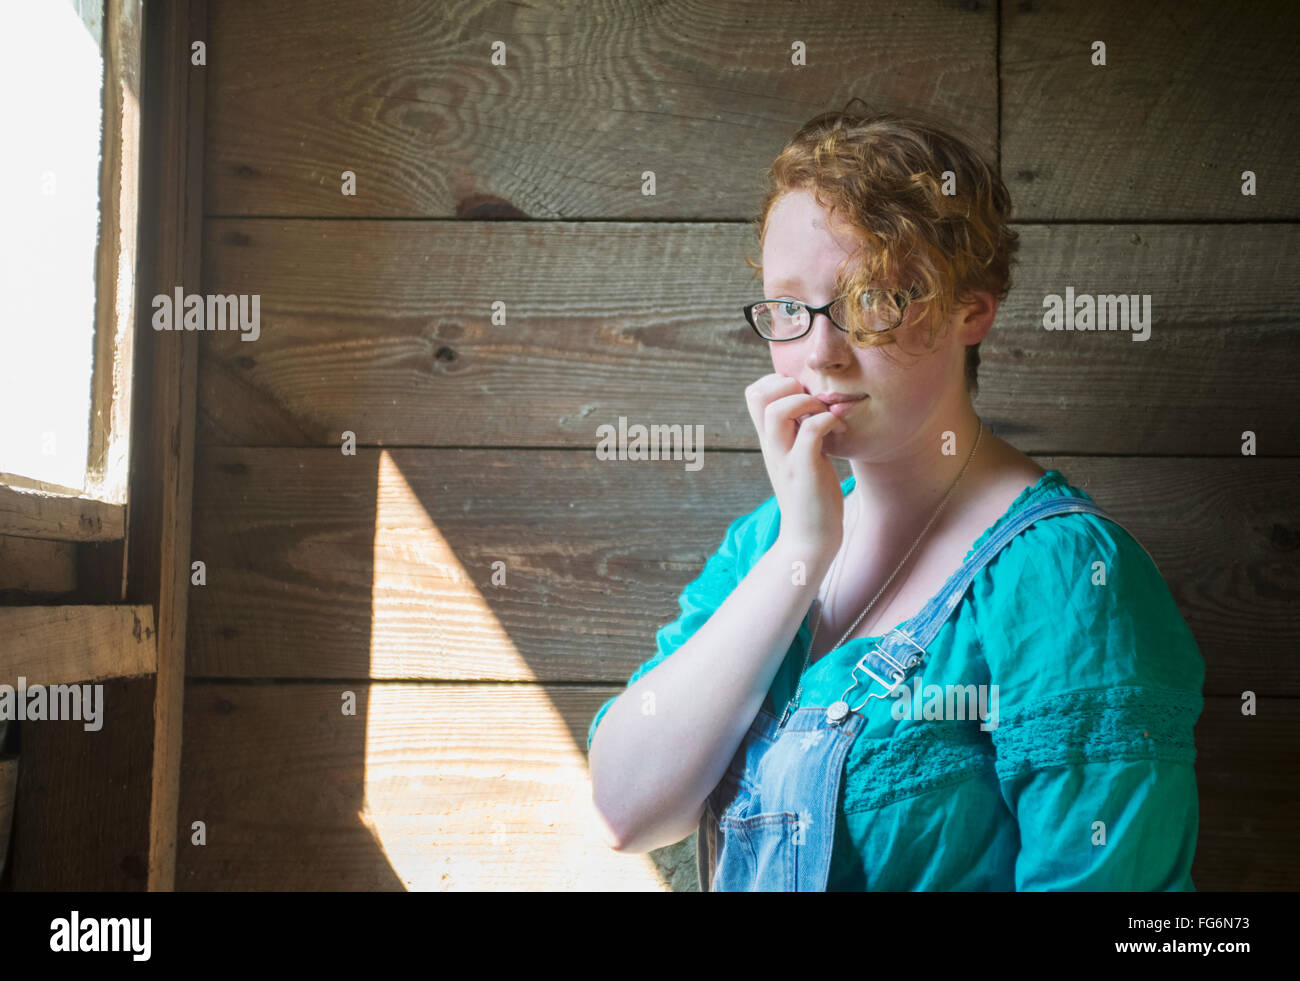 Portrait of a girl with curly red hair and eyeglasses standing against an old, wooden barn wall; Pittsboro, North - Stock Image